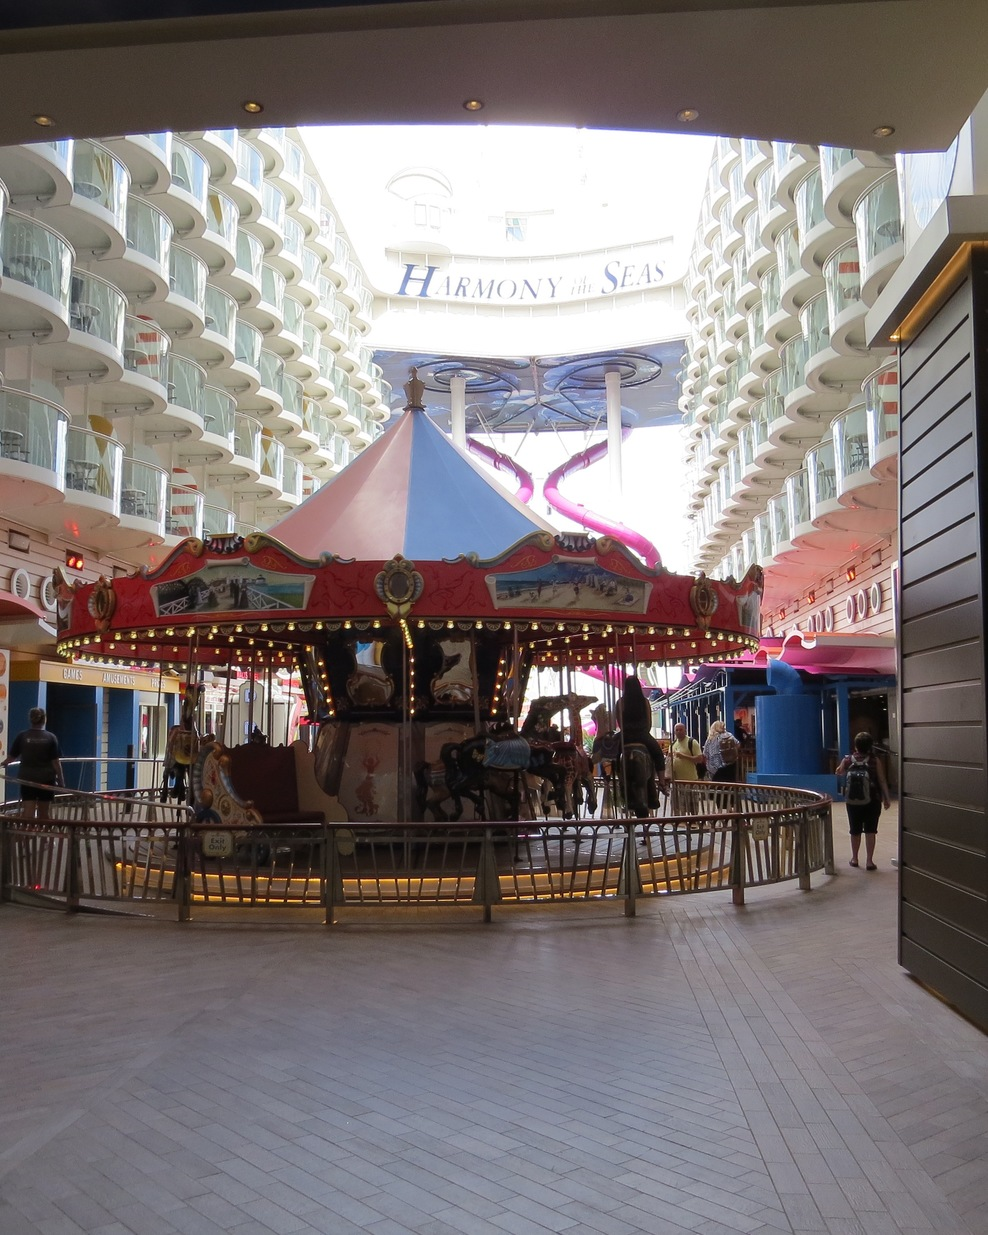 Carousel in the Boardwalk area.